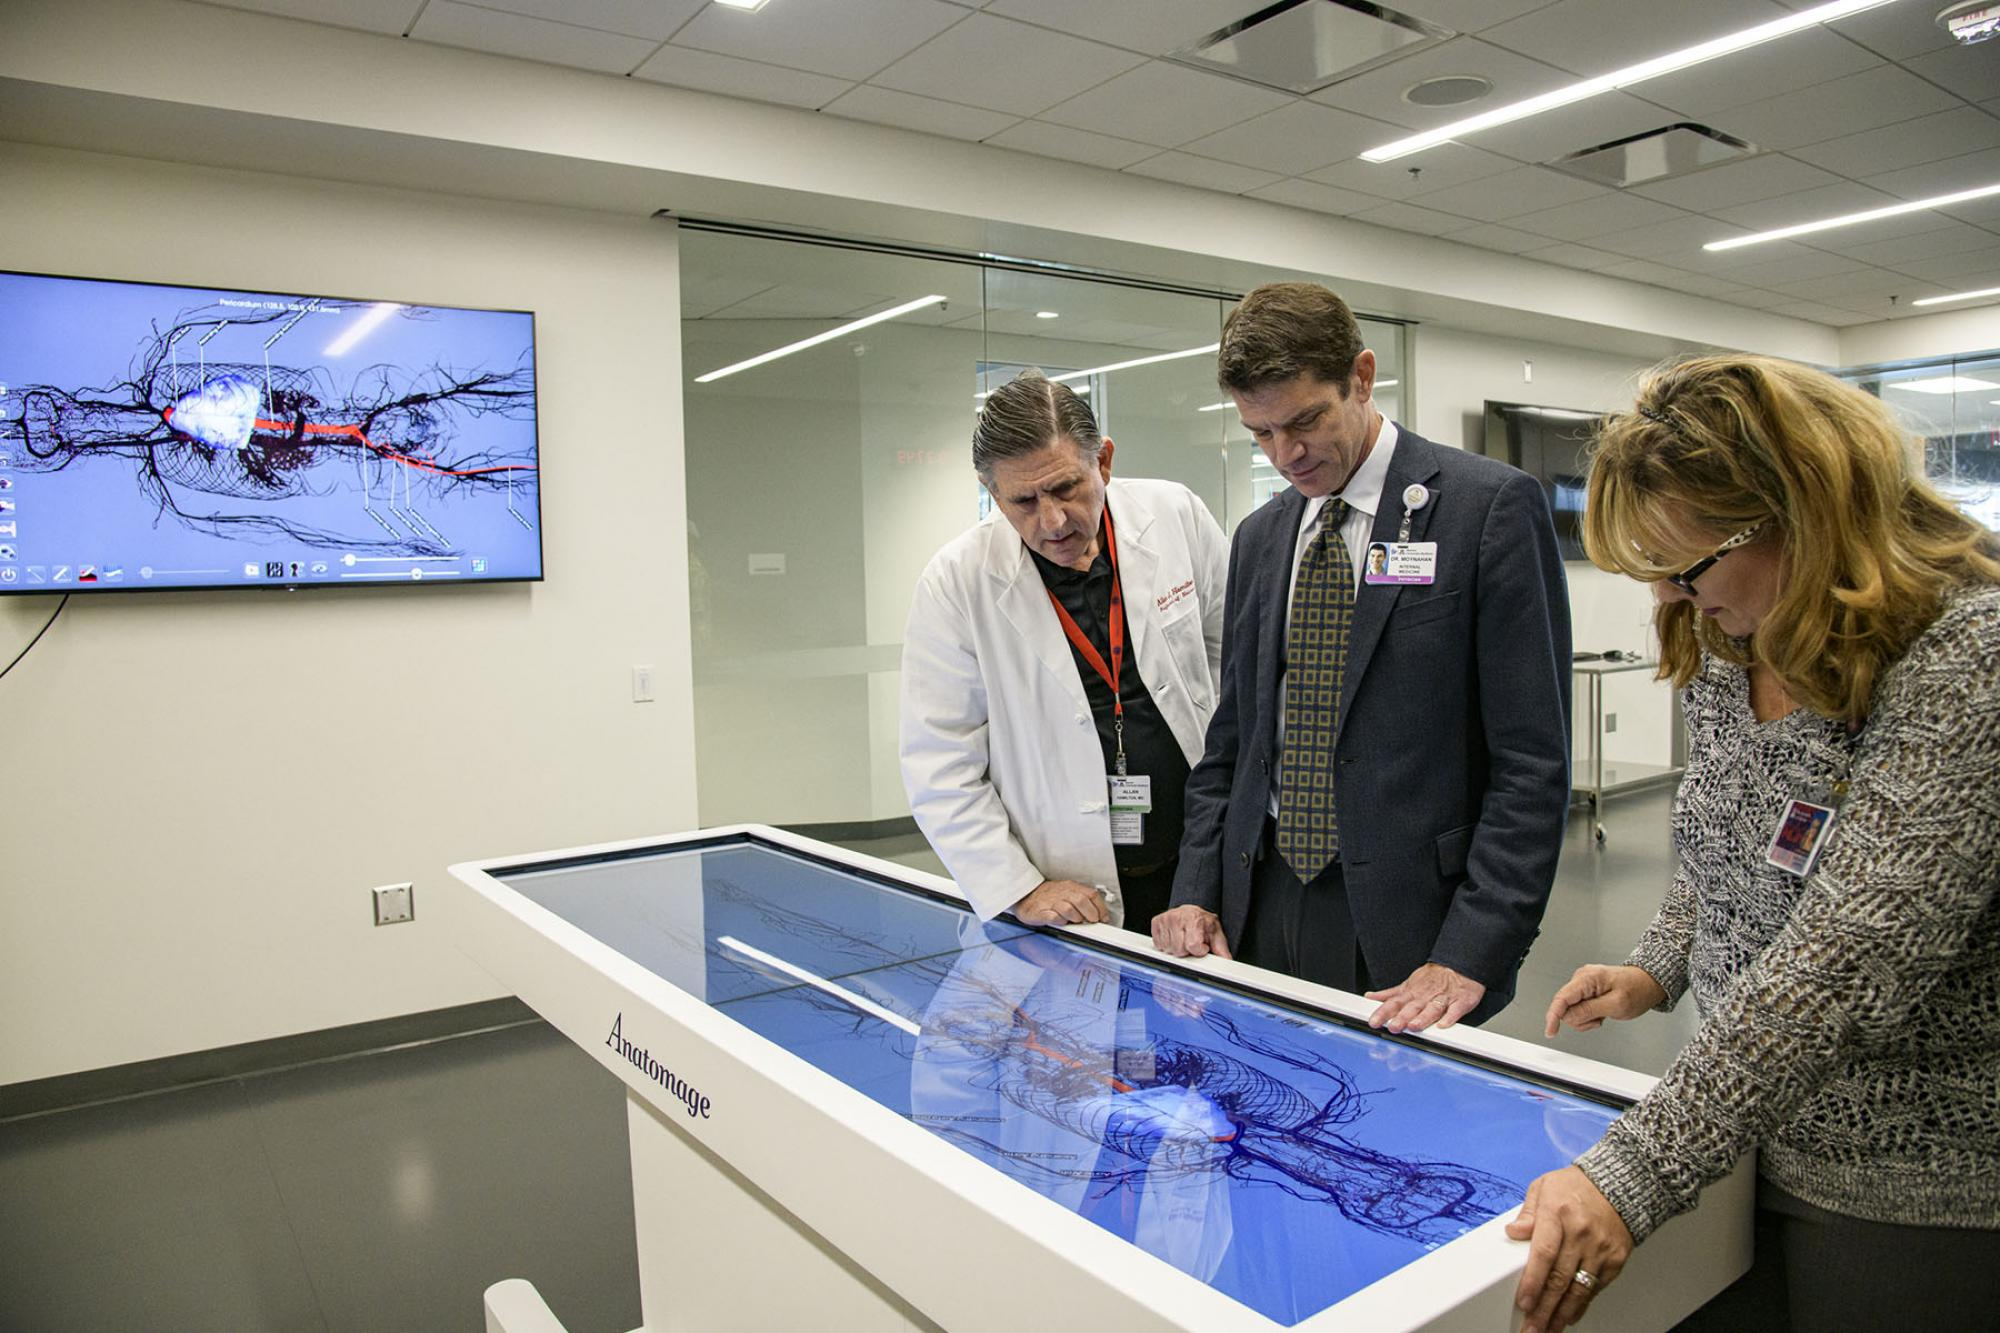 Allan Hamilton, executive director of the Arizona Simulation Technology and Education Center, Kevin Moynahan, College of Medicine–Tucson deputy dean for education, and Deana Ann Smith, health care simulation educator, work on a life-size virtual dissecti